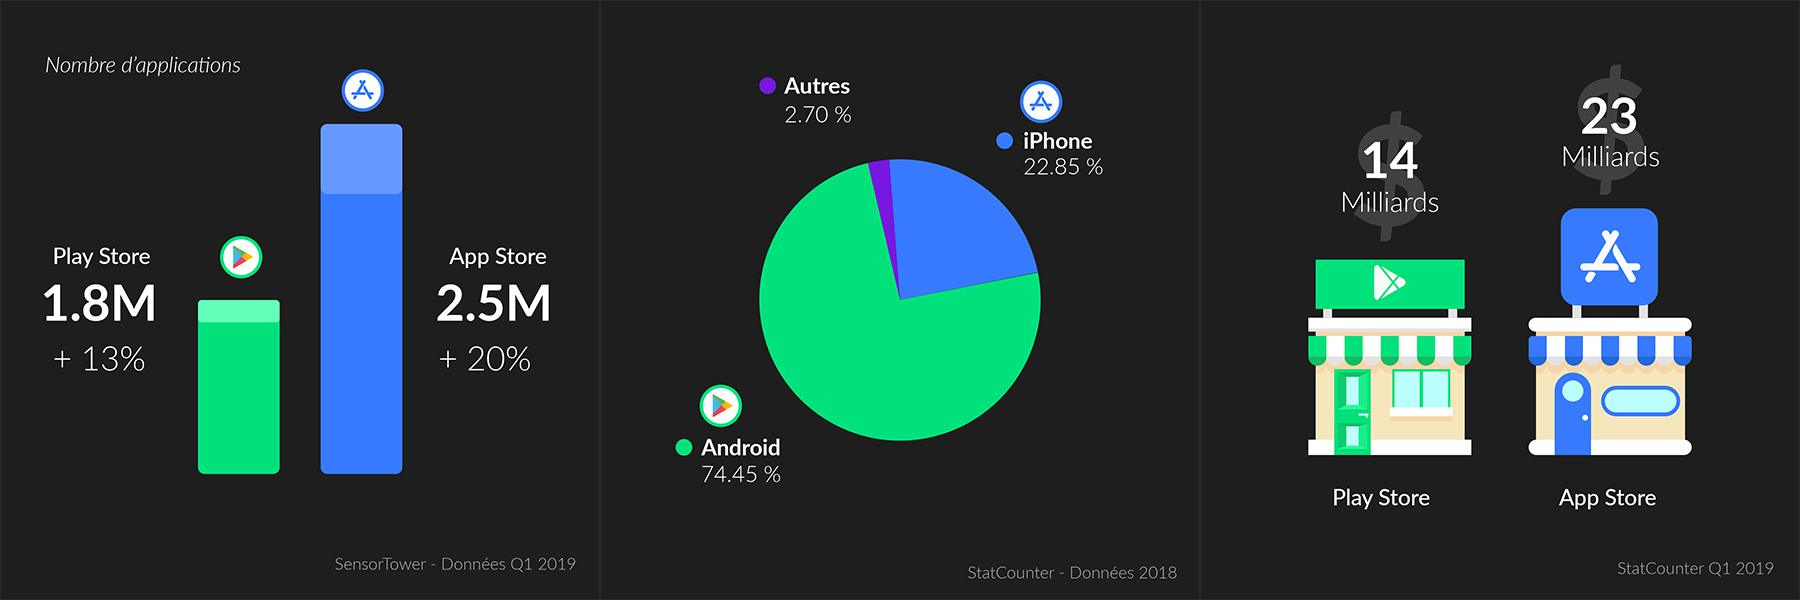 Statistiques mobiles